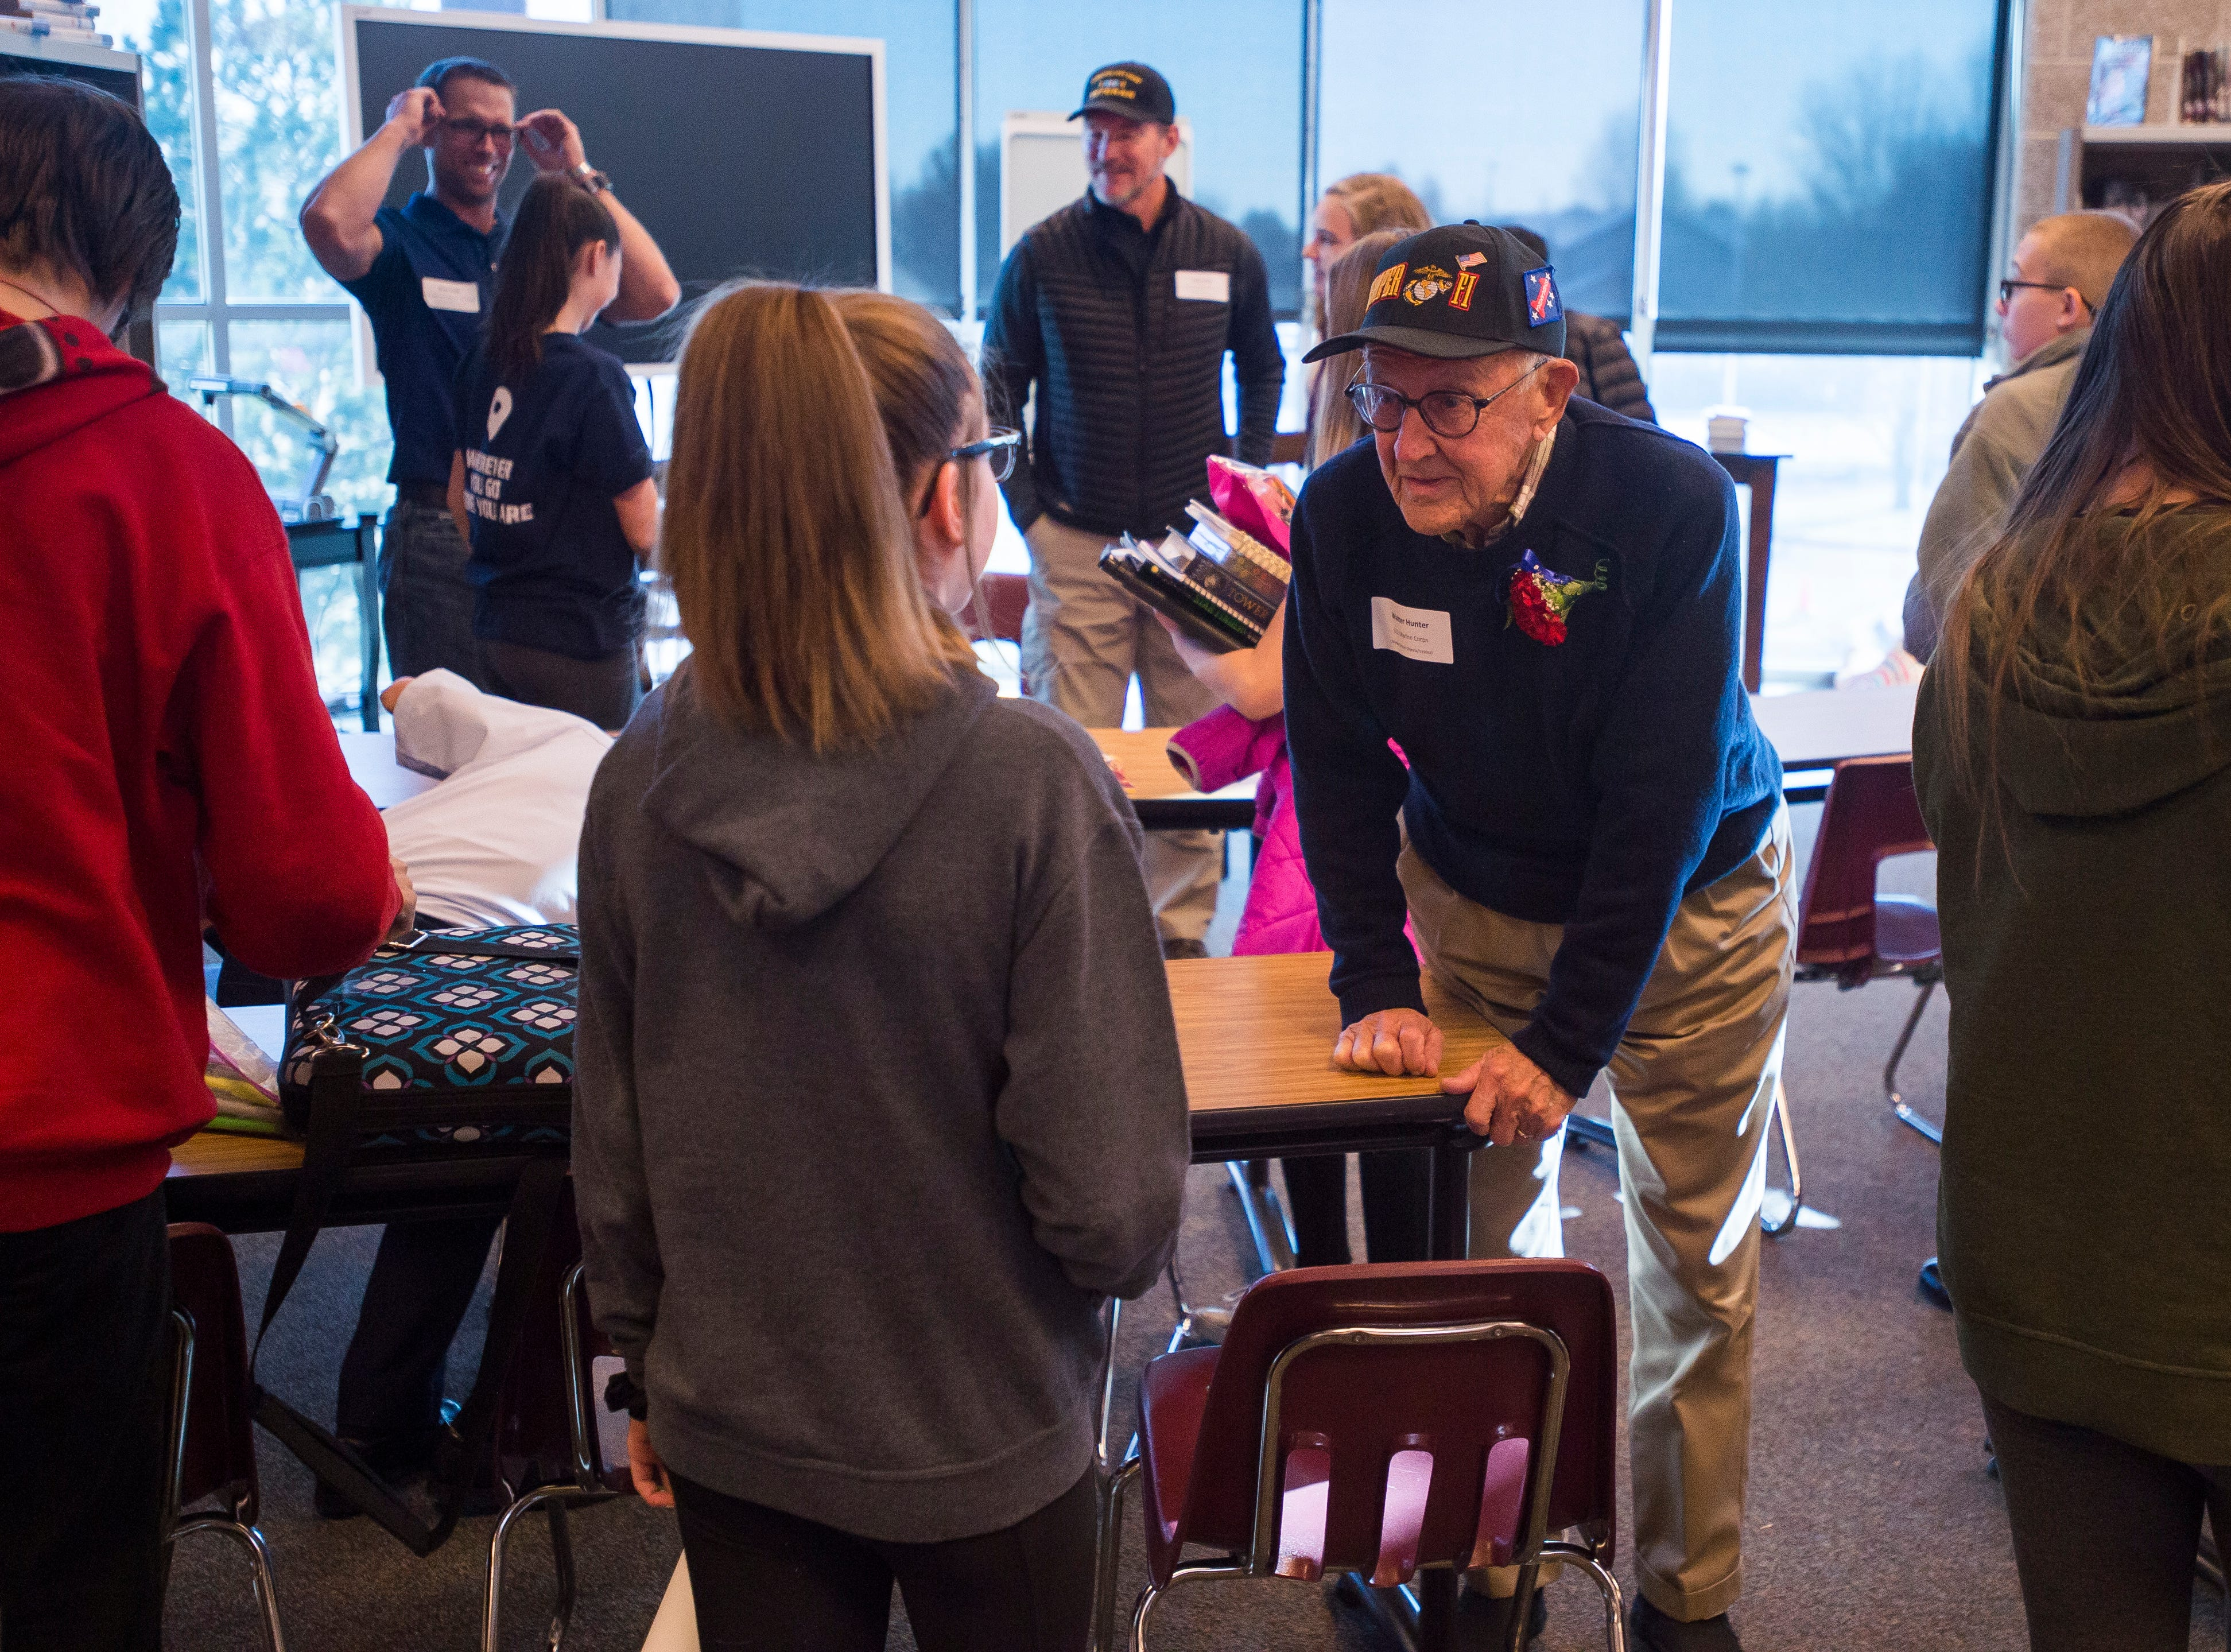 World War II Marine Corp veteran Walter Hunter chats with eighth grader Kylie Foust after speaking to a class at Preston Middle School's fourth annual Veterans Day Breakfast on Friday, Nov. 9, 2018, at Preston Middle School in Fort Collins, Colo.